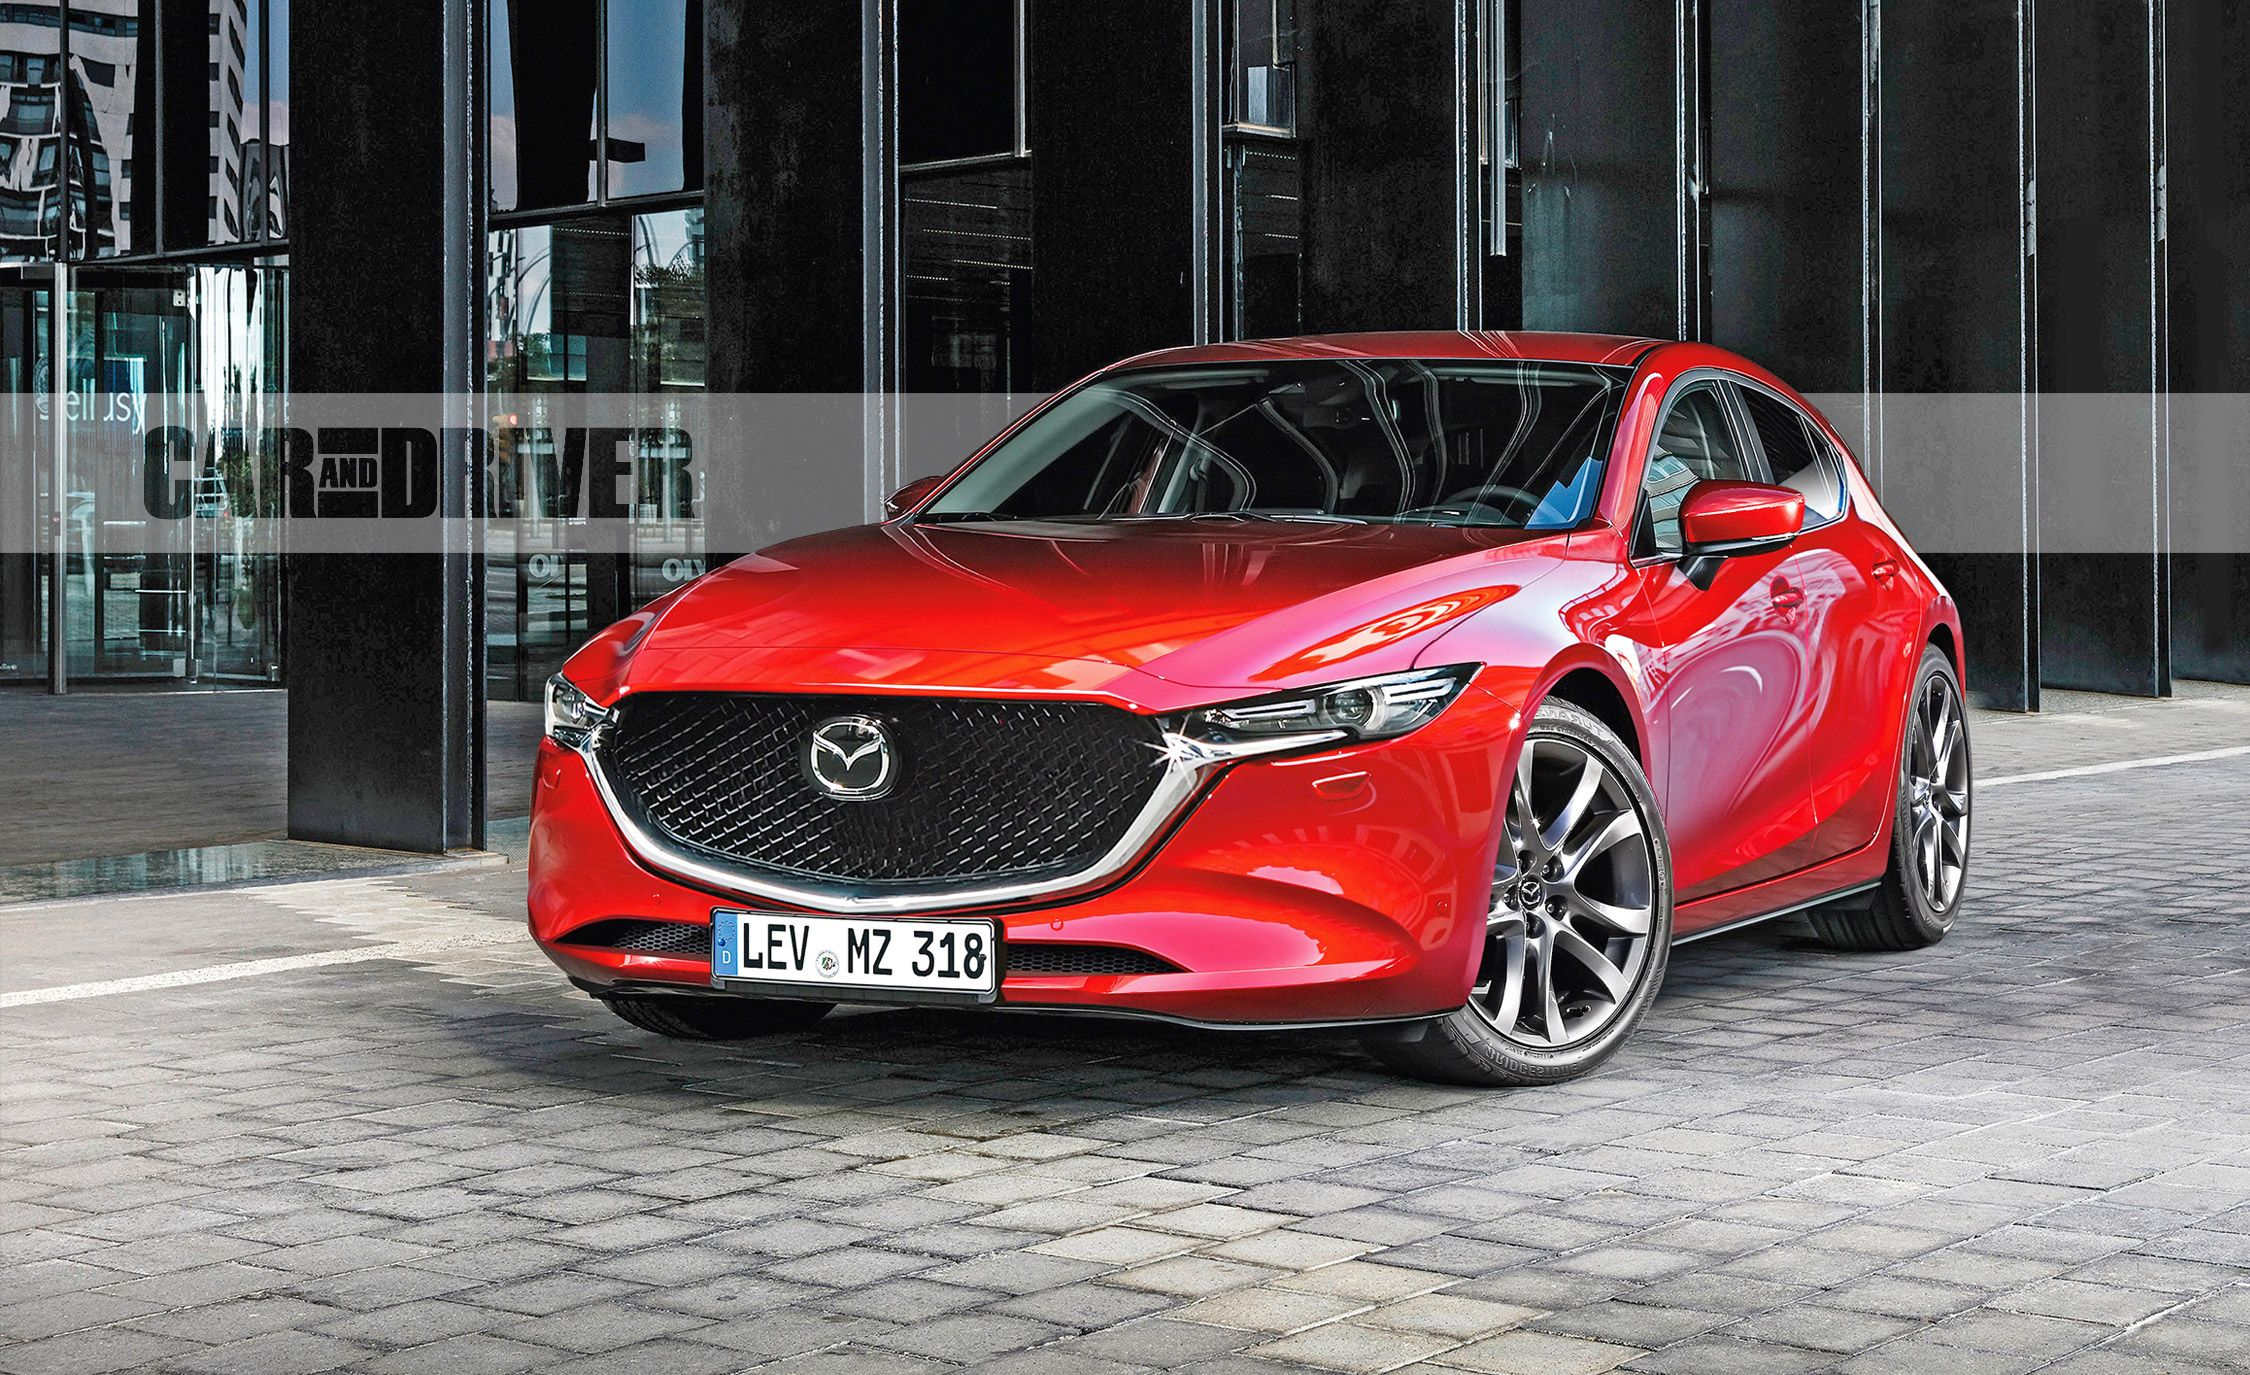 2019 Mazda Rx9 >> All-New 2019 Mazda 3 Teased - Sleek New Model Debuts This Month